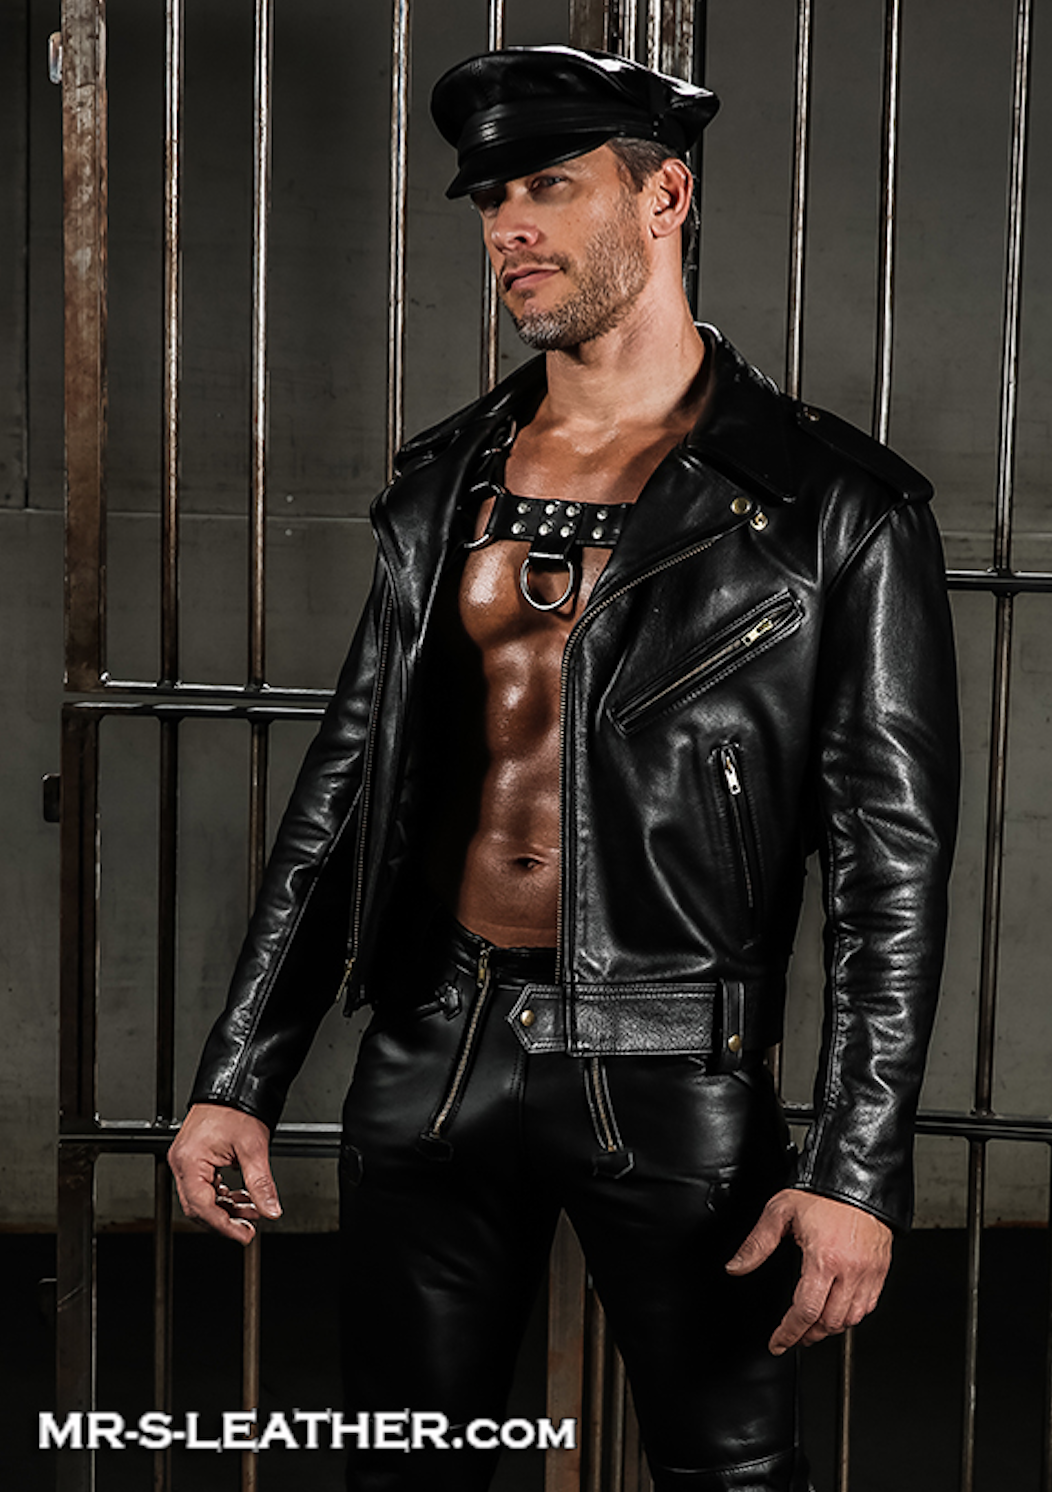 Shop gay leather